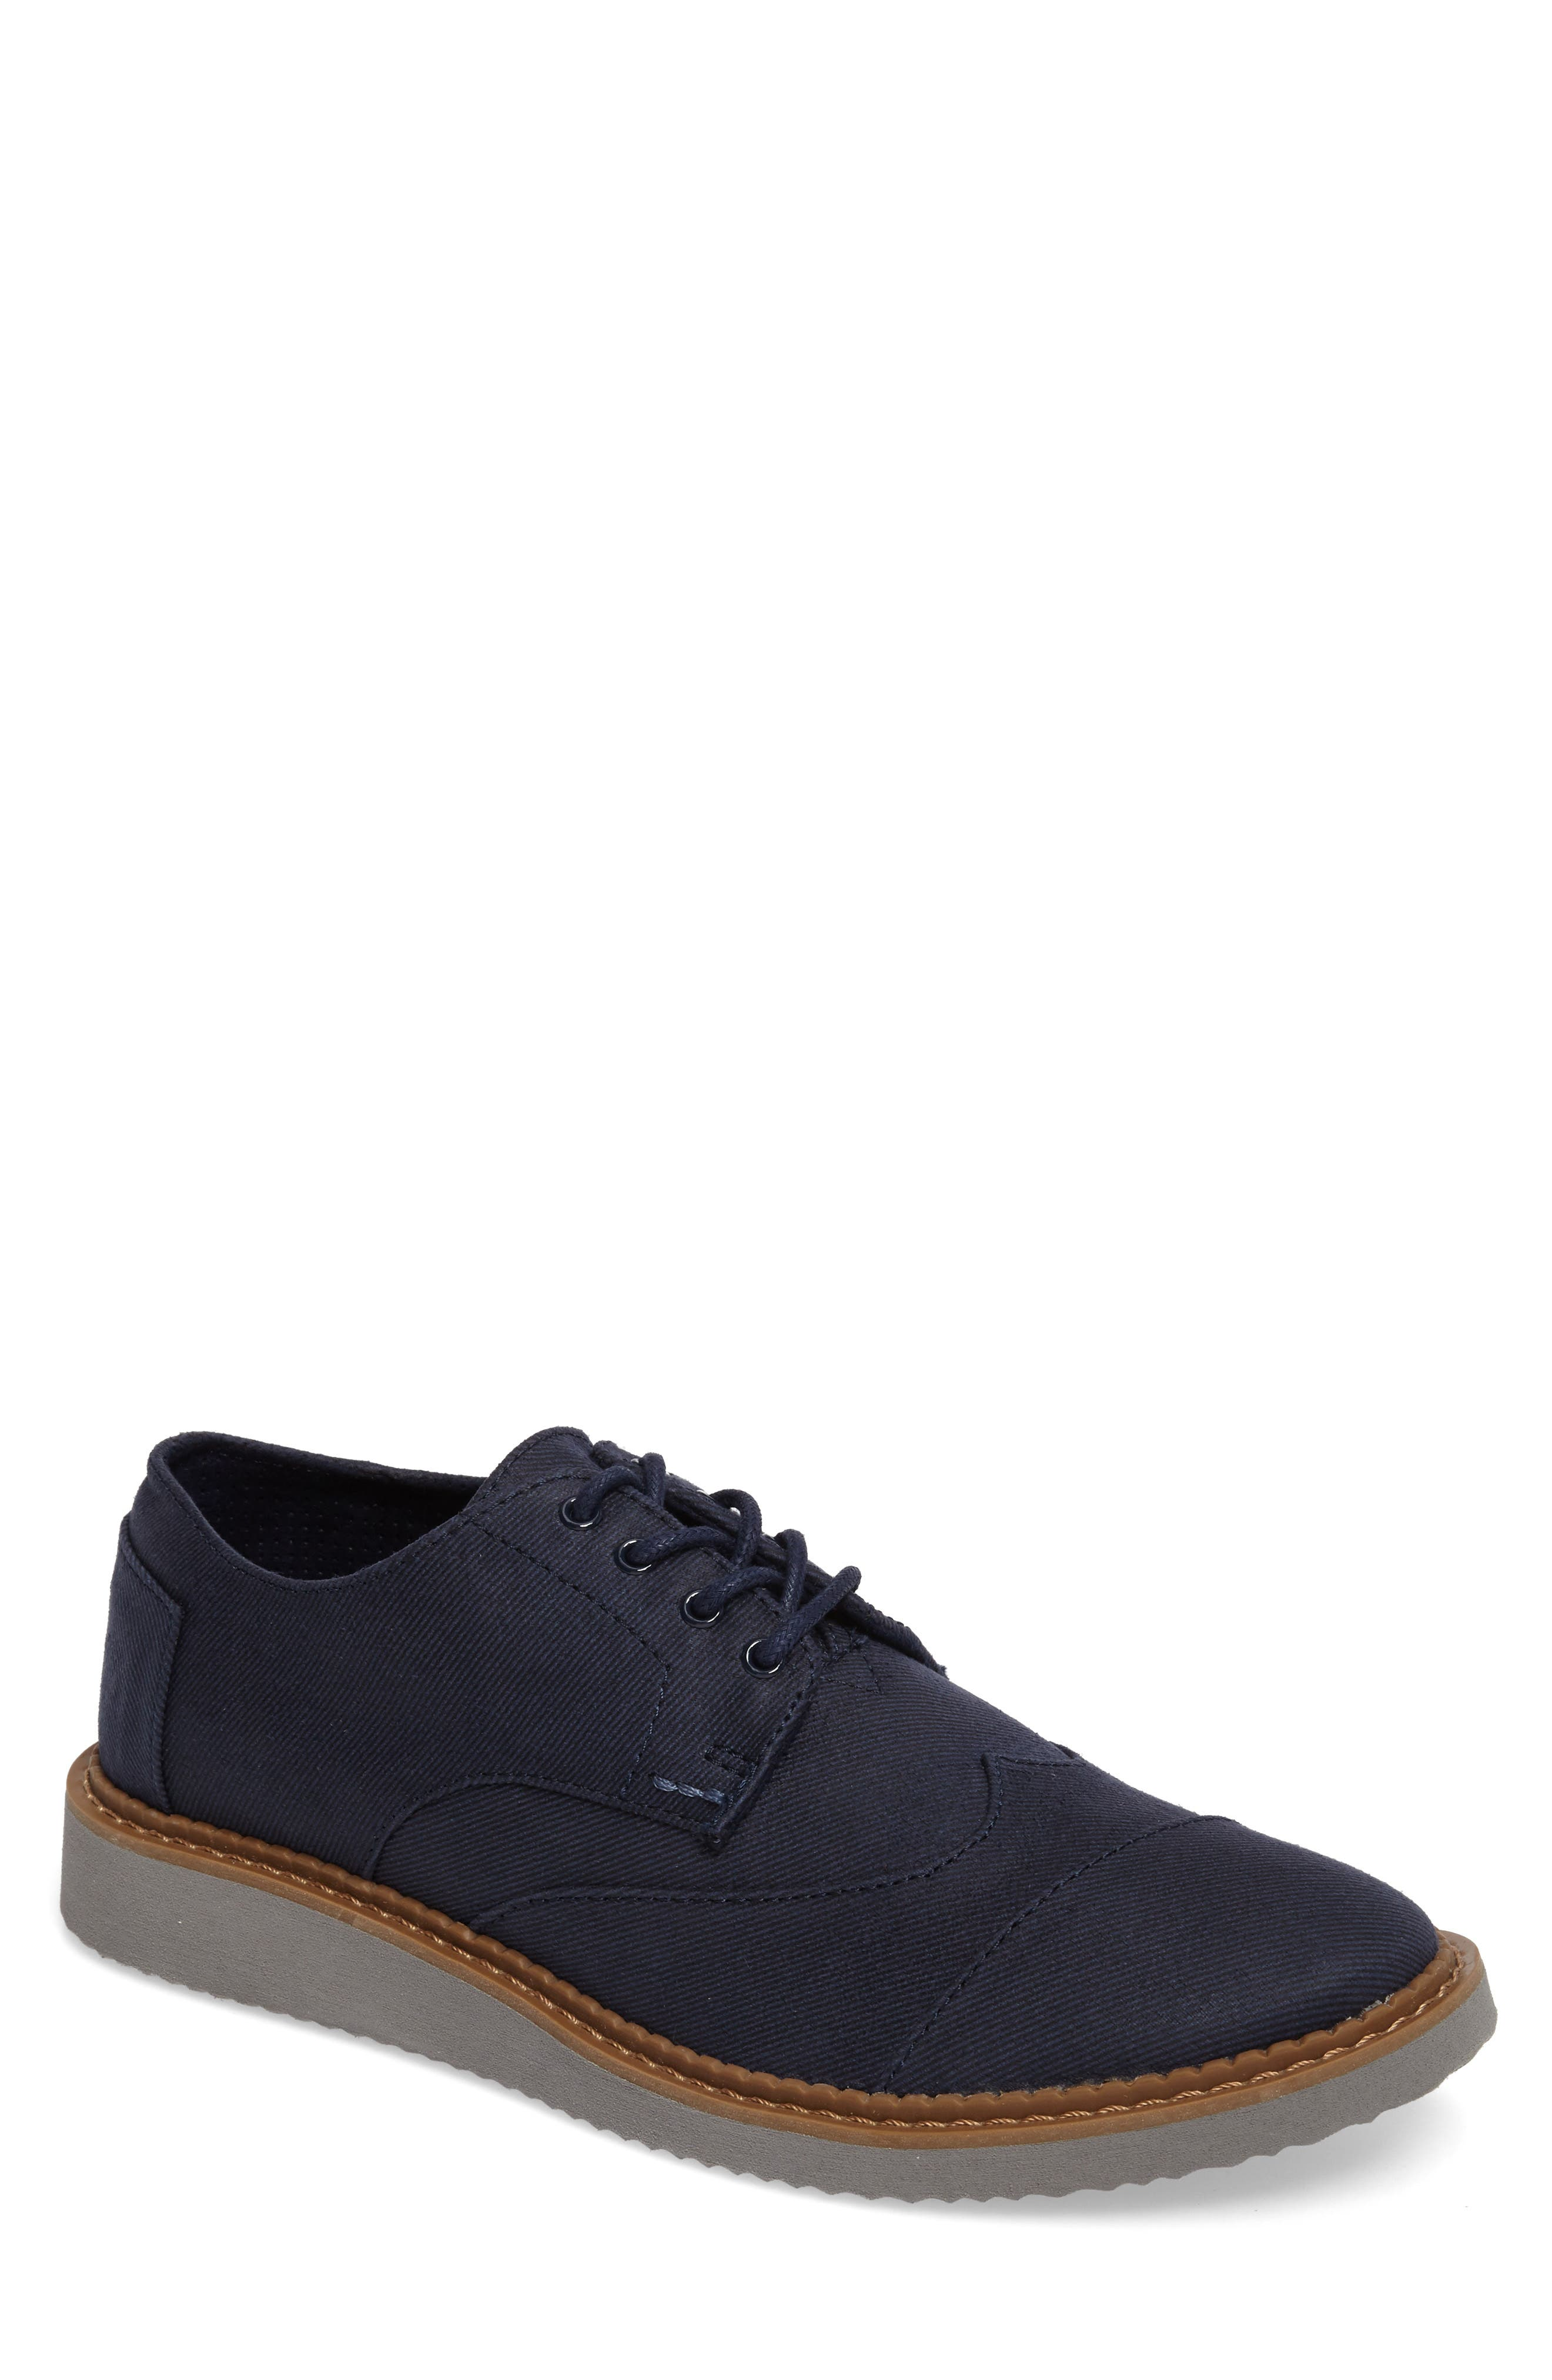 'Classic Brogue' Cotton Twill Derby,                             Main thumbnail 14, color,